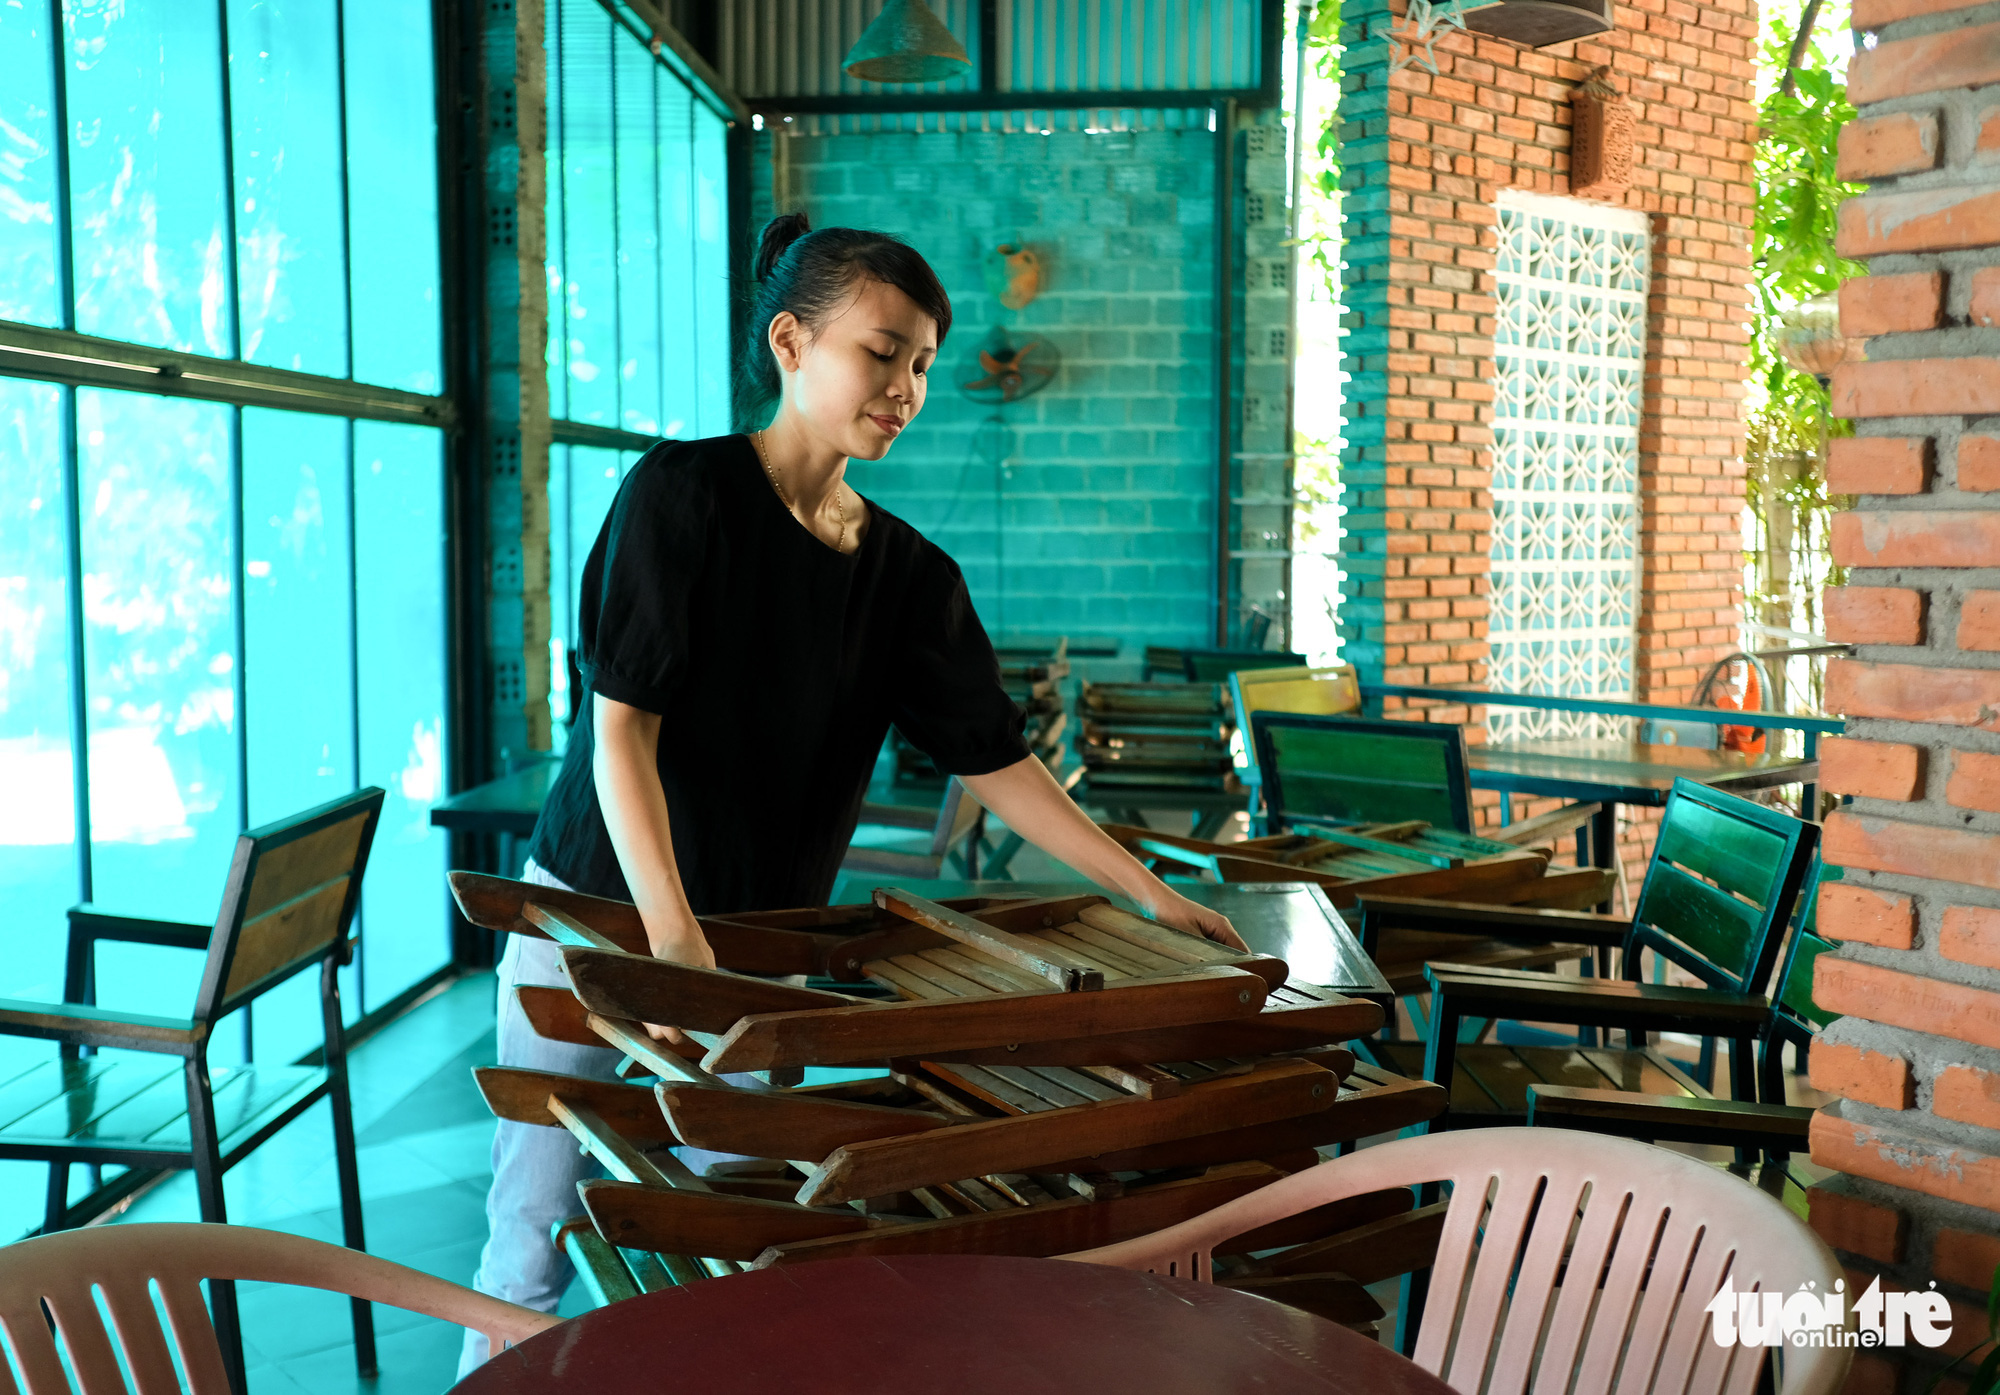 A woman puts away tables and chairs at a café in Da Nang City, June 20, 2021. Photo: Tan Luc / Tuoi Tre